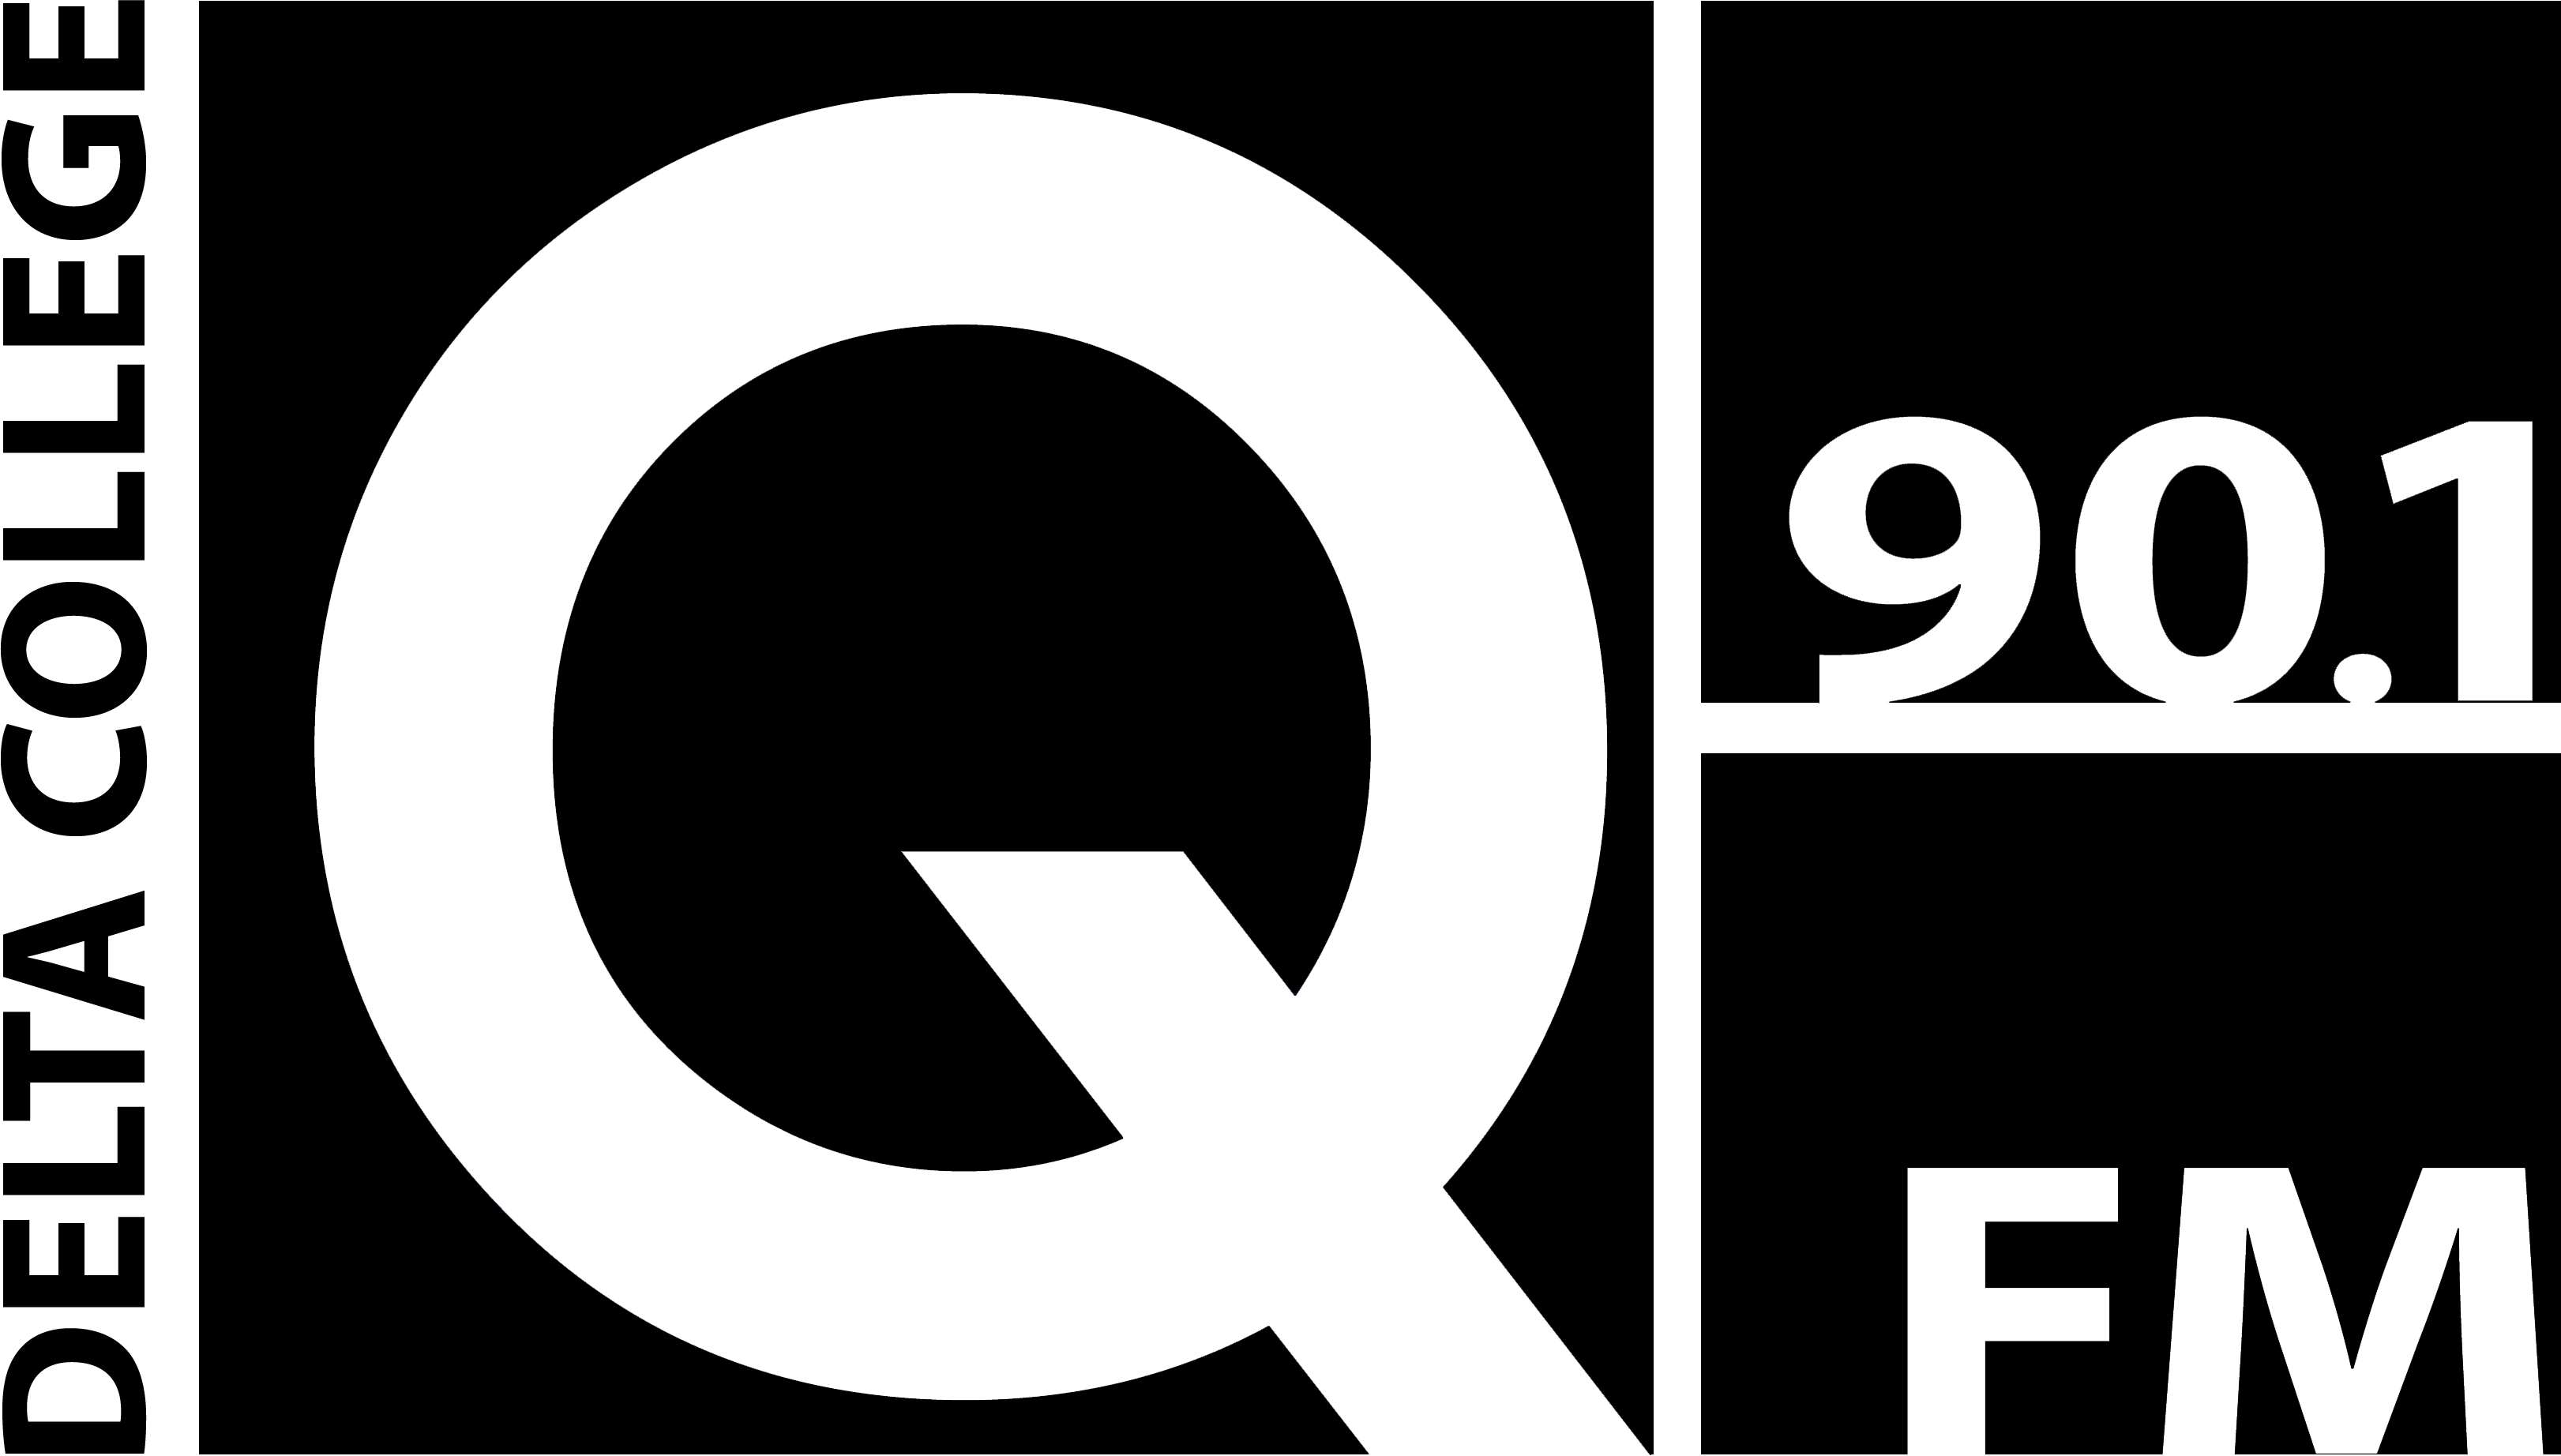 Q-90.1 FM Logo in Black